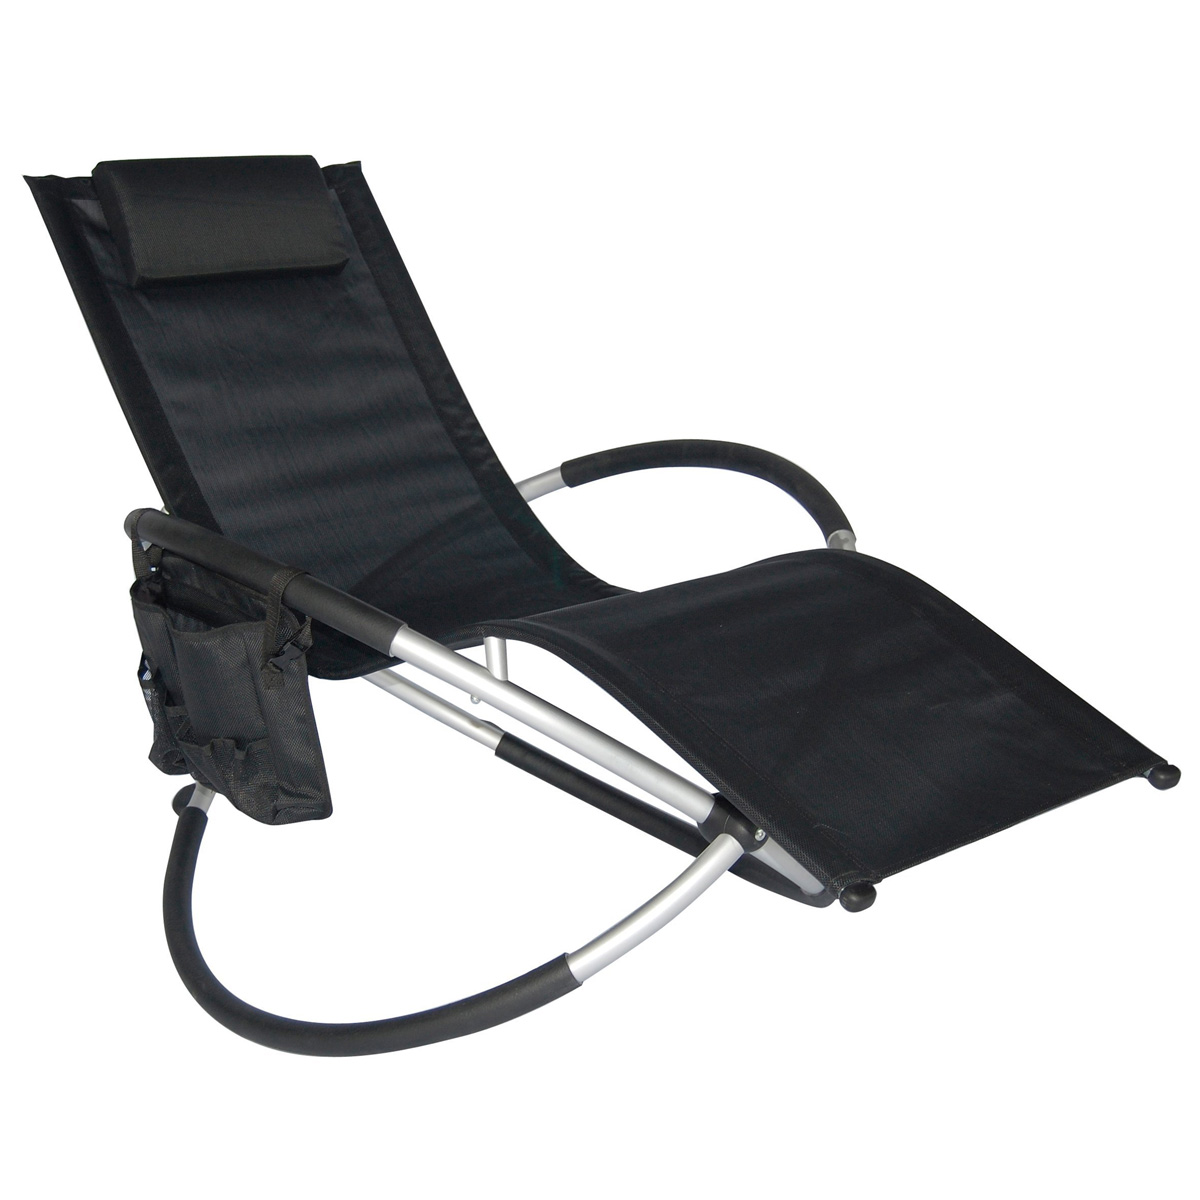 Beach lounge chair portable - Orbital Lounger Zero Gravity Portable Lounger